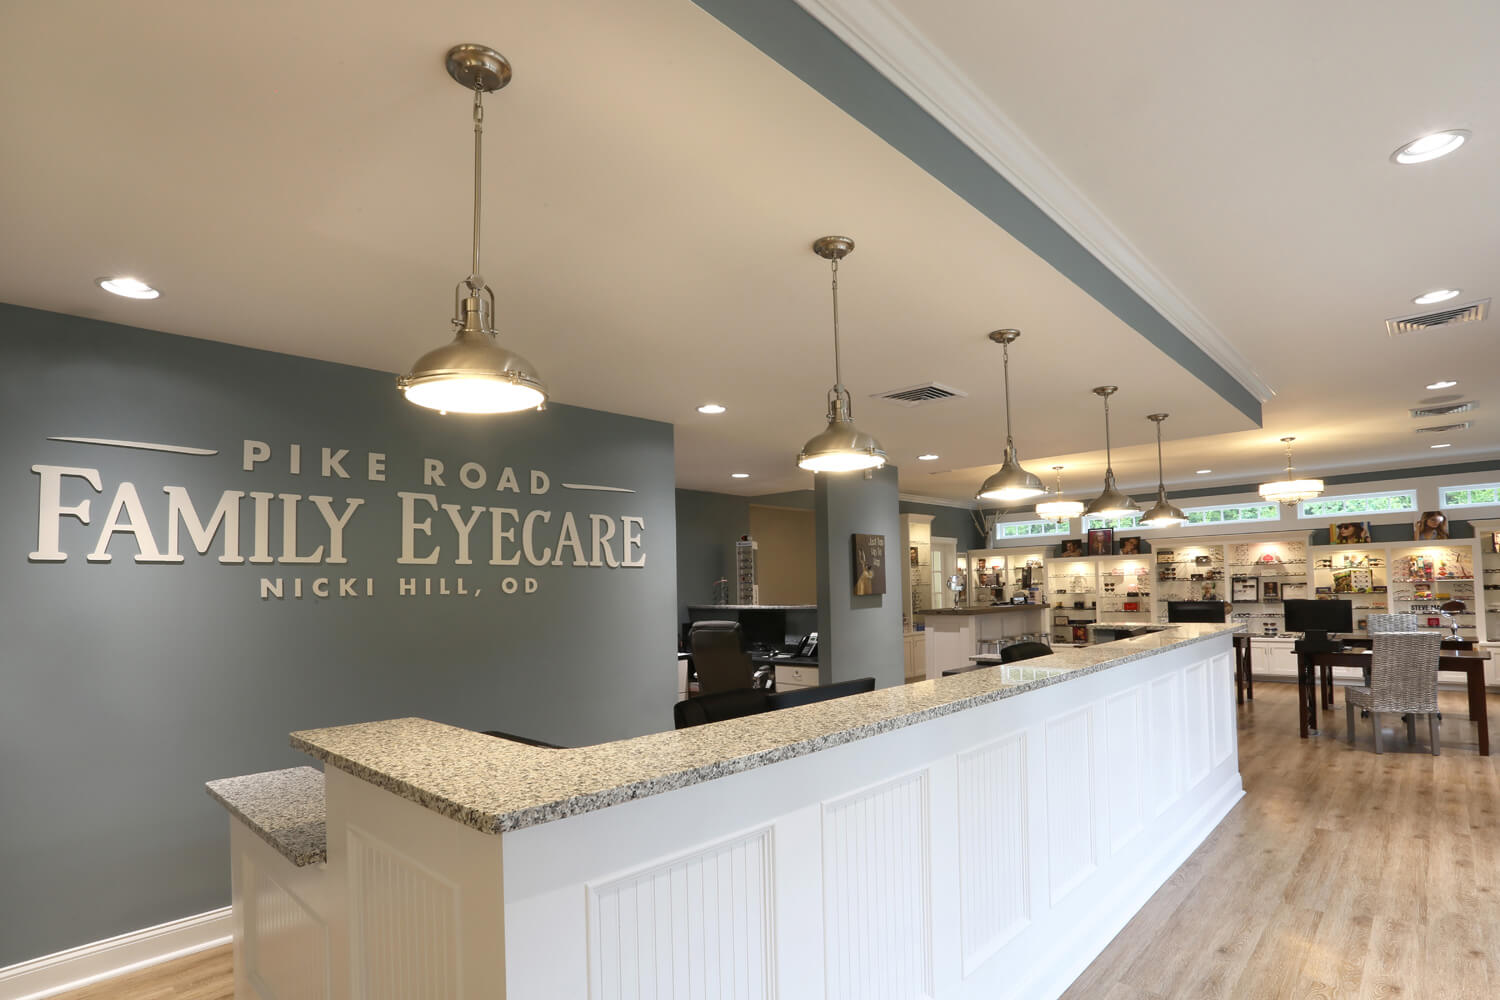 Pike Road Family Eyecare Designed by Foshee Architecture – View of the Reception Desk